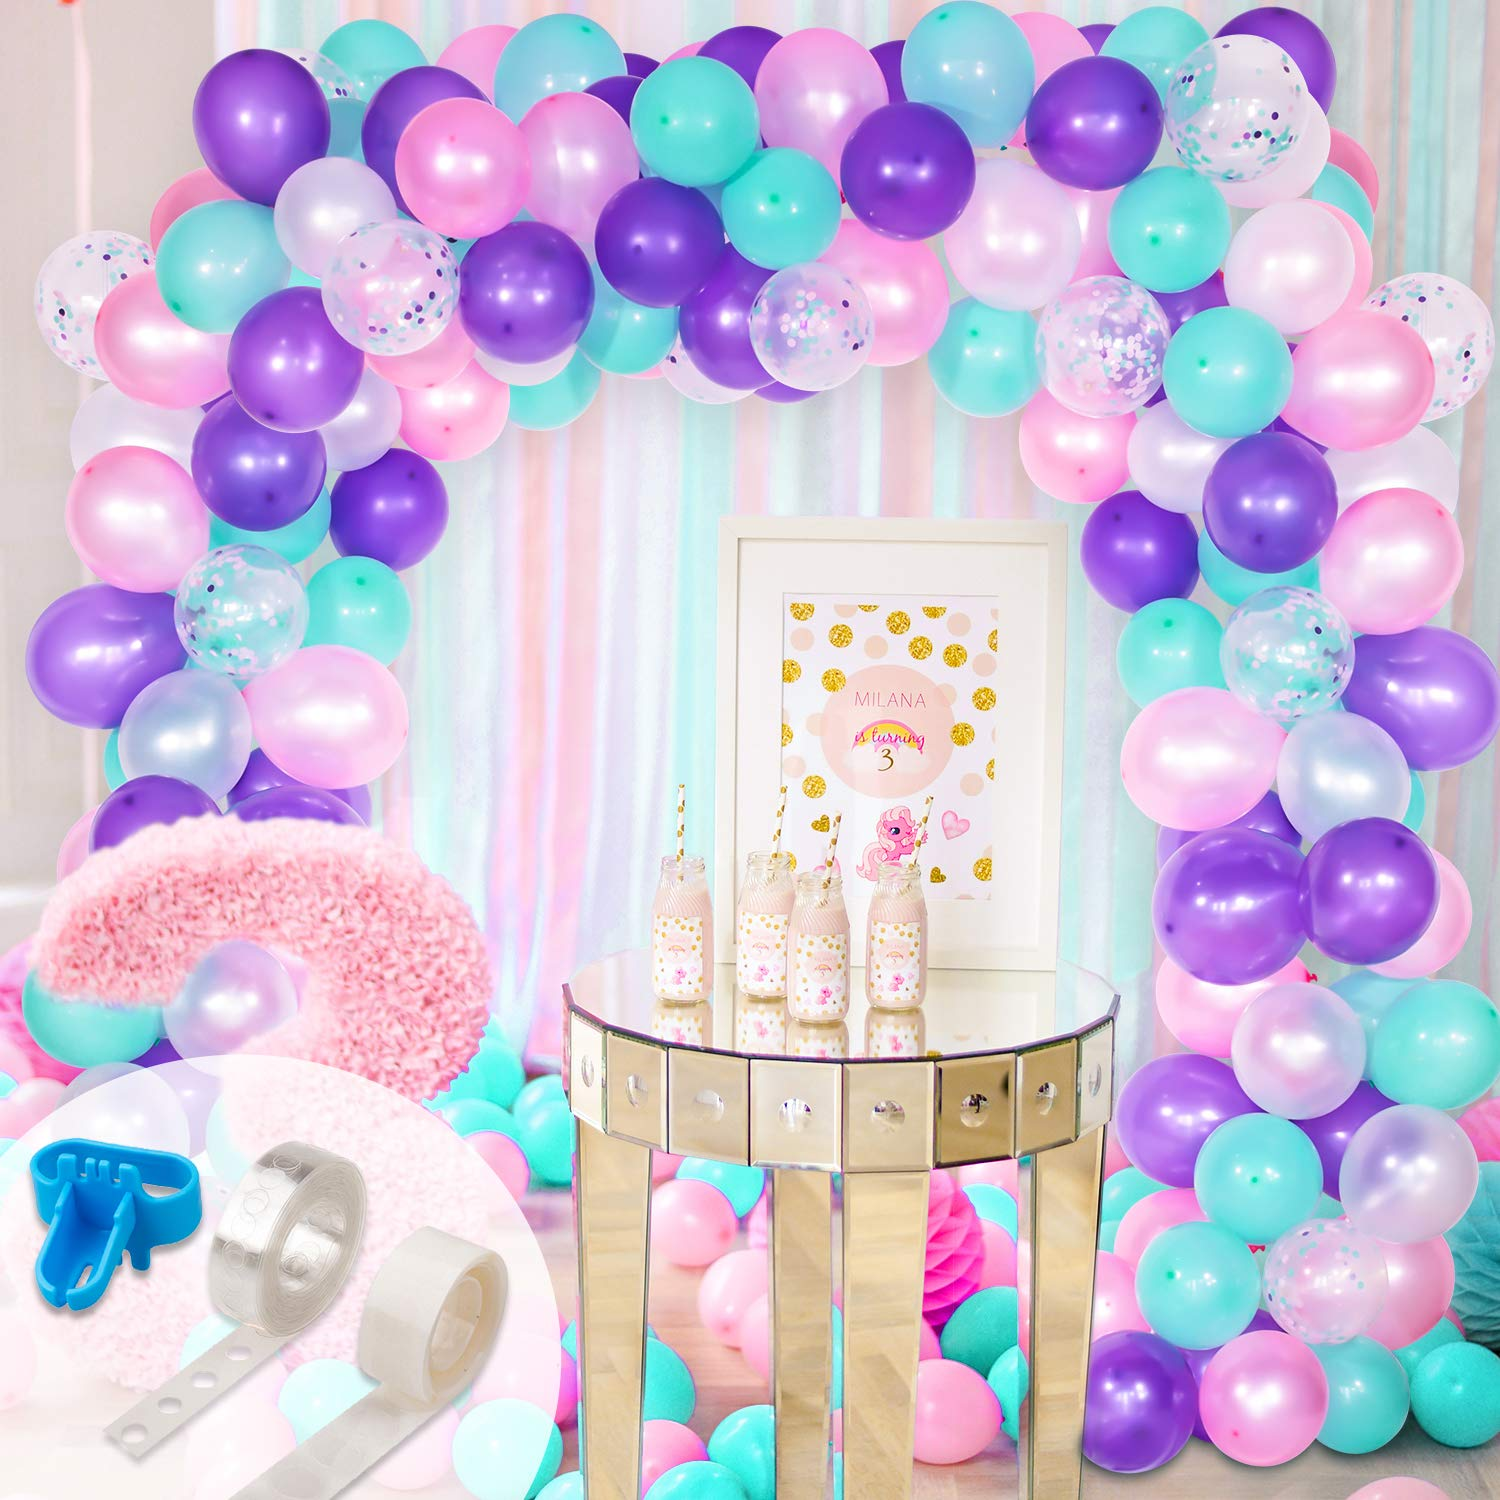 Whaline Mermaid Balloon Arch & Garland Kit, Purple, Pink, Aqua, White and Mermaid Confetti Balloons with 16ft Balloon Strip Tape, 1 Tying Tool and 100 Dot Glue for Wedding Birthday Party D¨¦cor